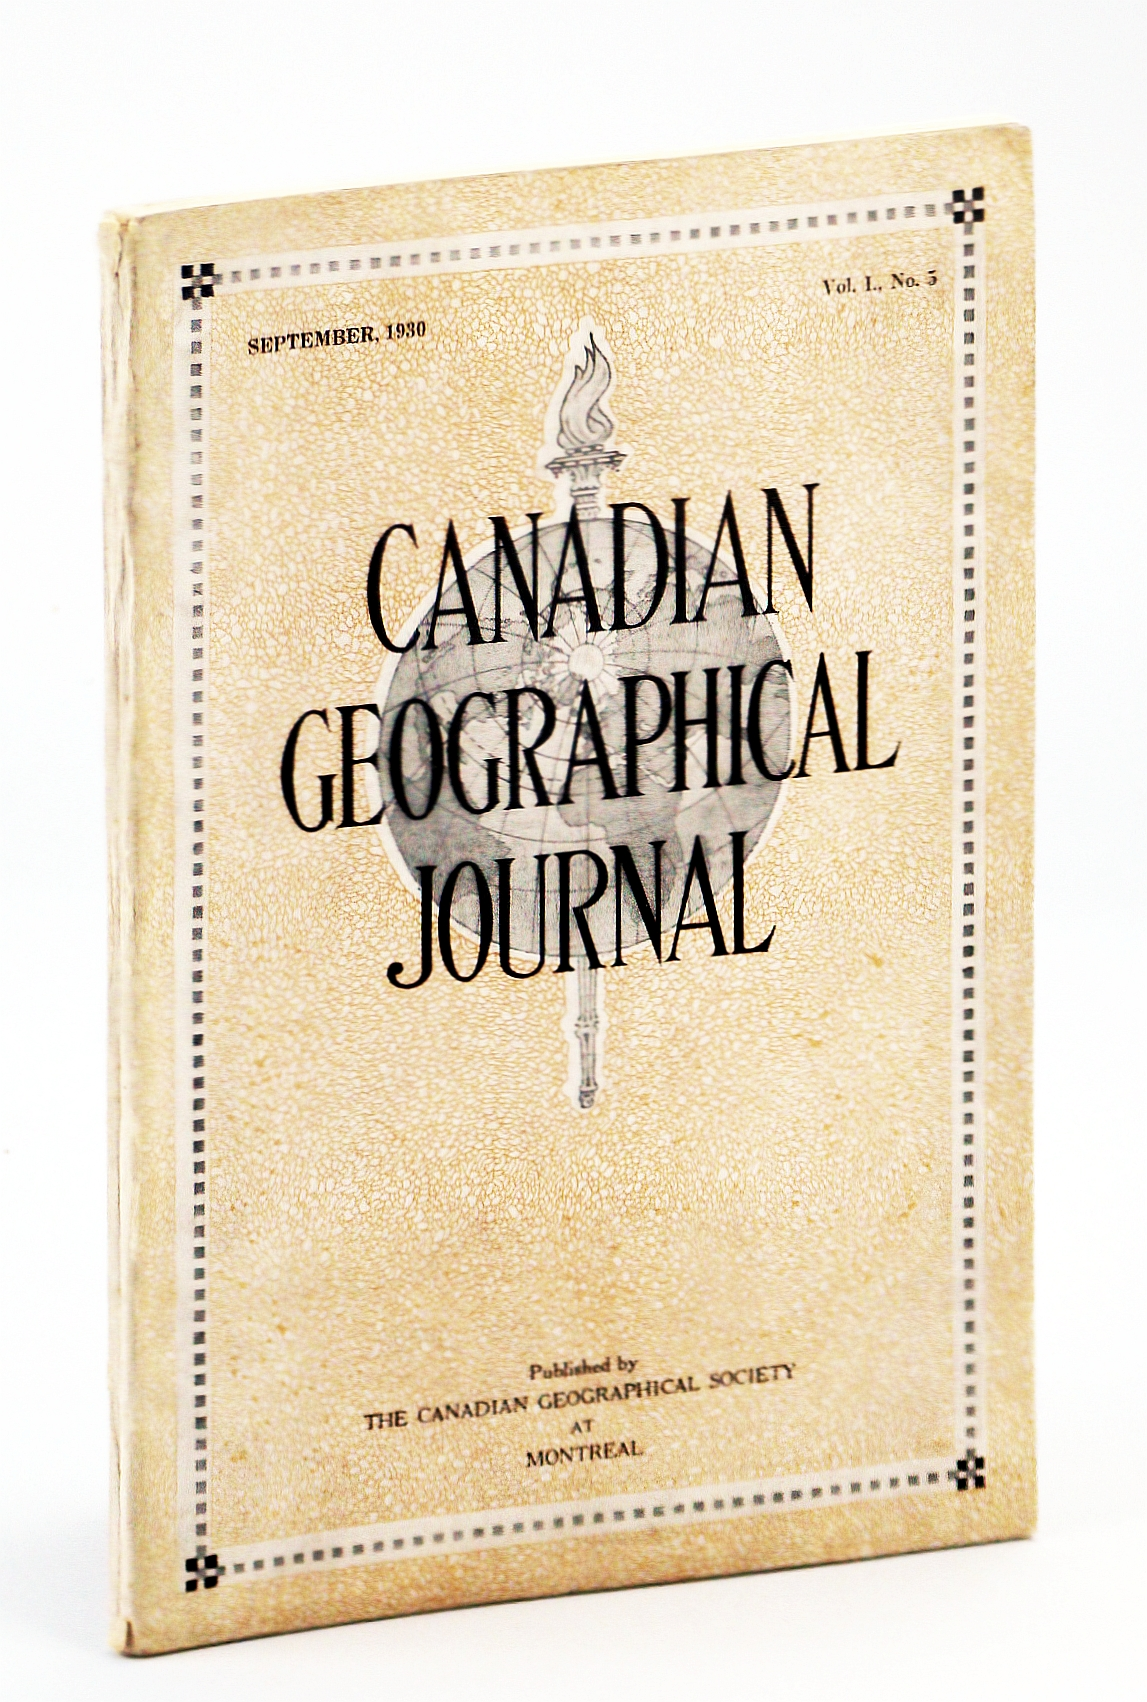 Image for Canadian Geographical Journal, September [Sept.] 1930, Vol. I, No. 5 - Canada's Forest Wealth / Journey to Simla, India